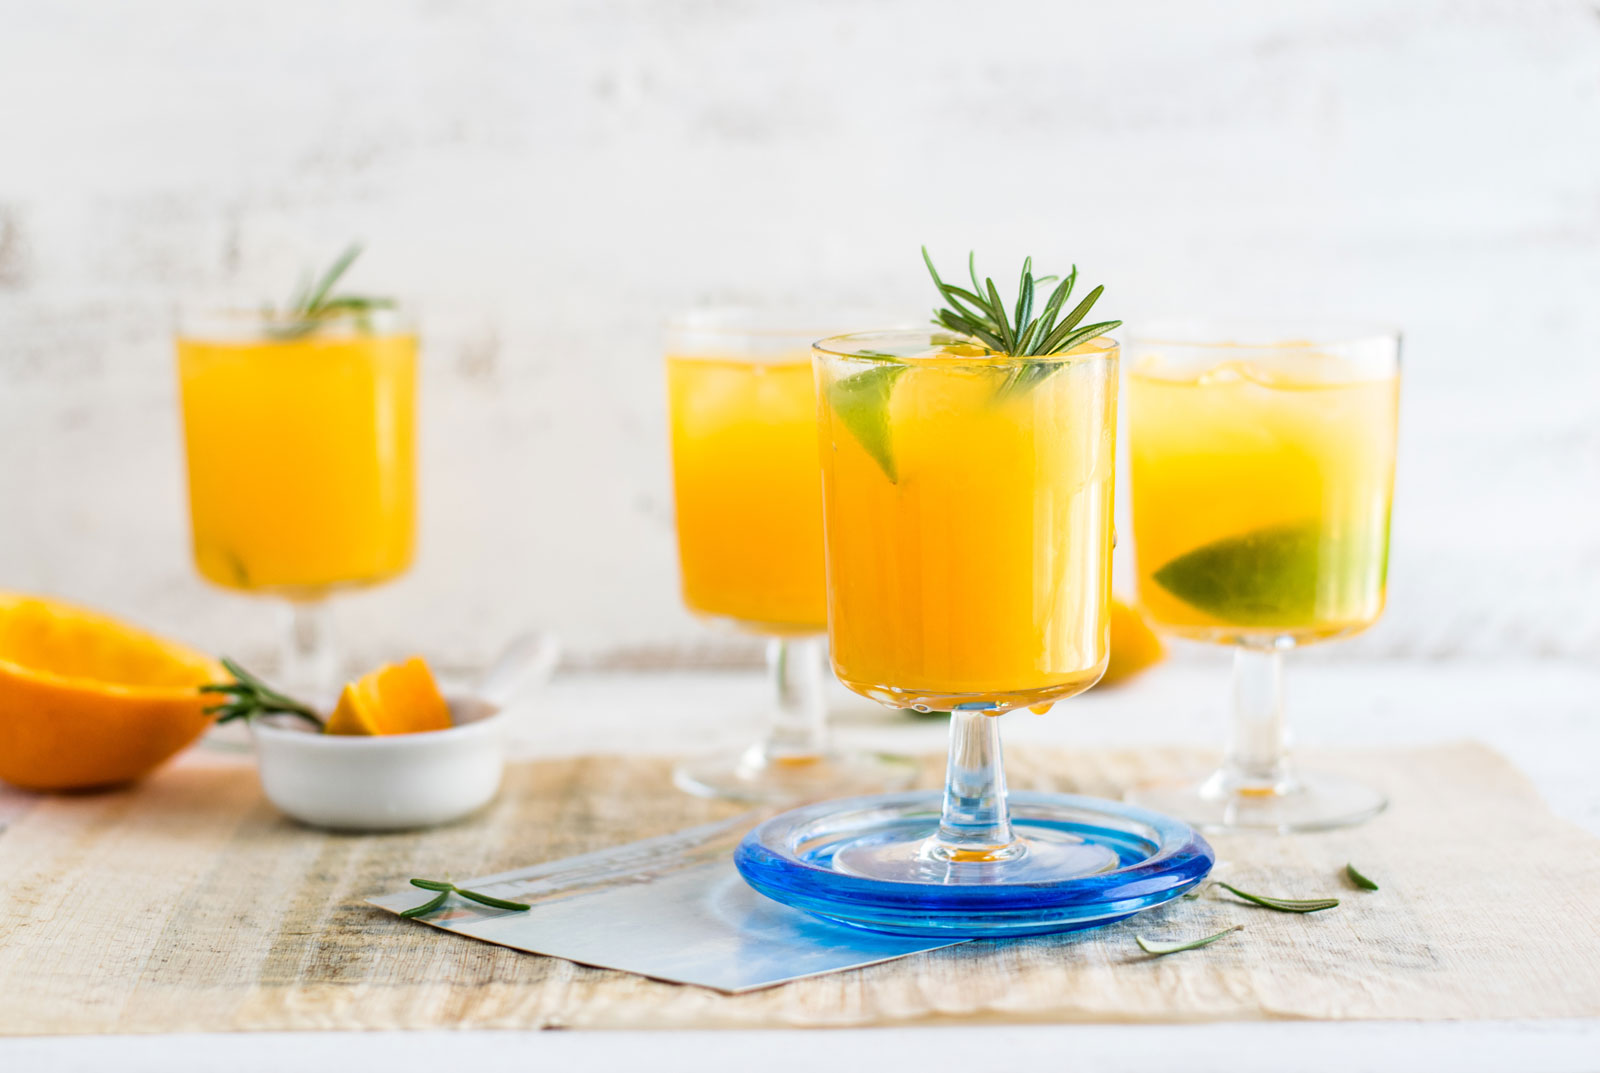 Fruit Juice | 7 Things To Look For When Buying Healthy Juice